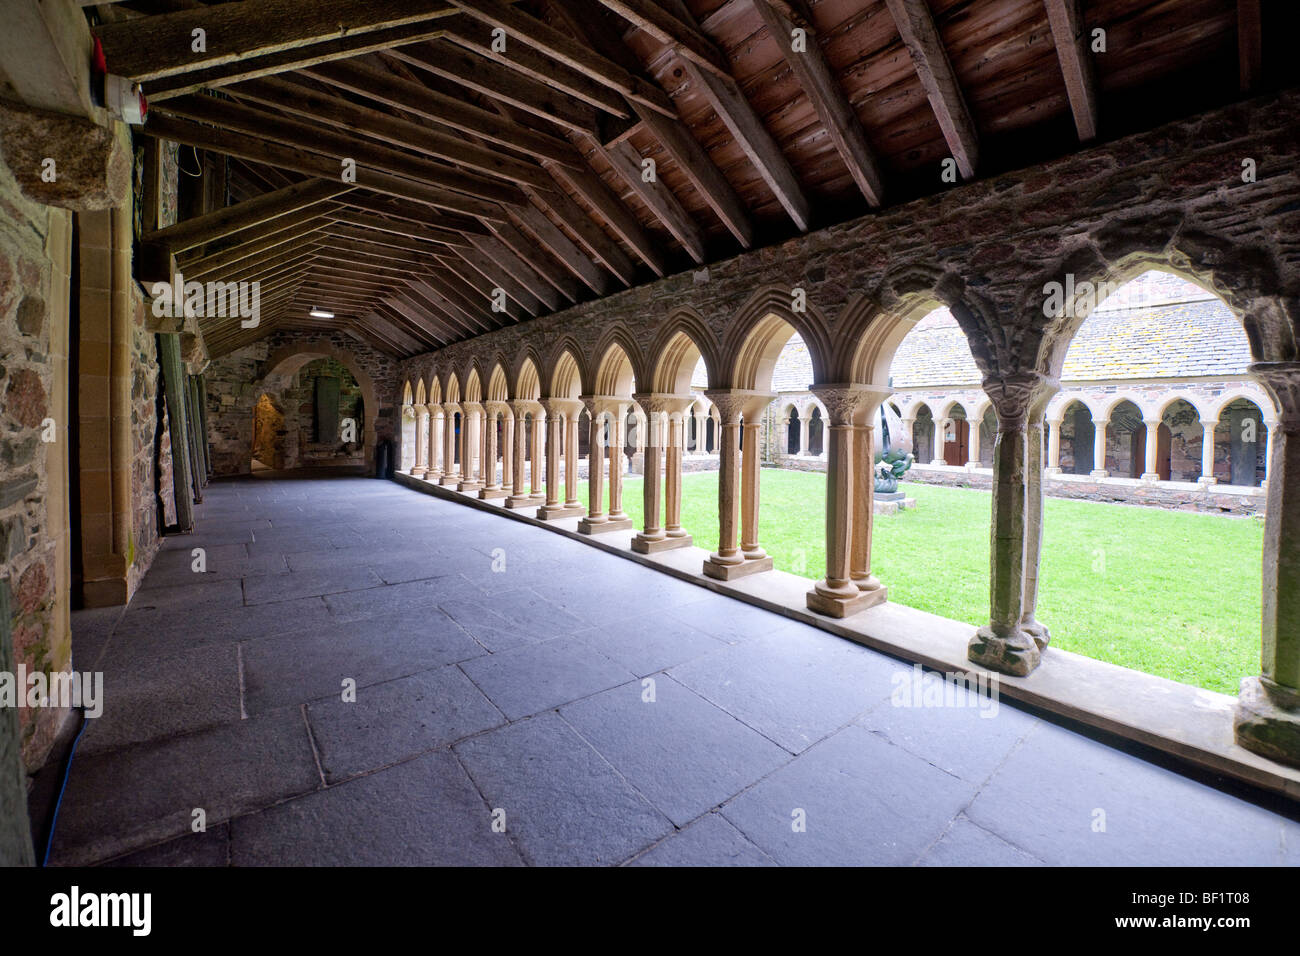 The cloisters and stone carvings of Iona Abbey on the Isle of Iona, Scotland - Stock Image